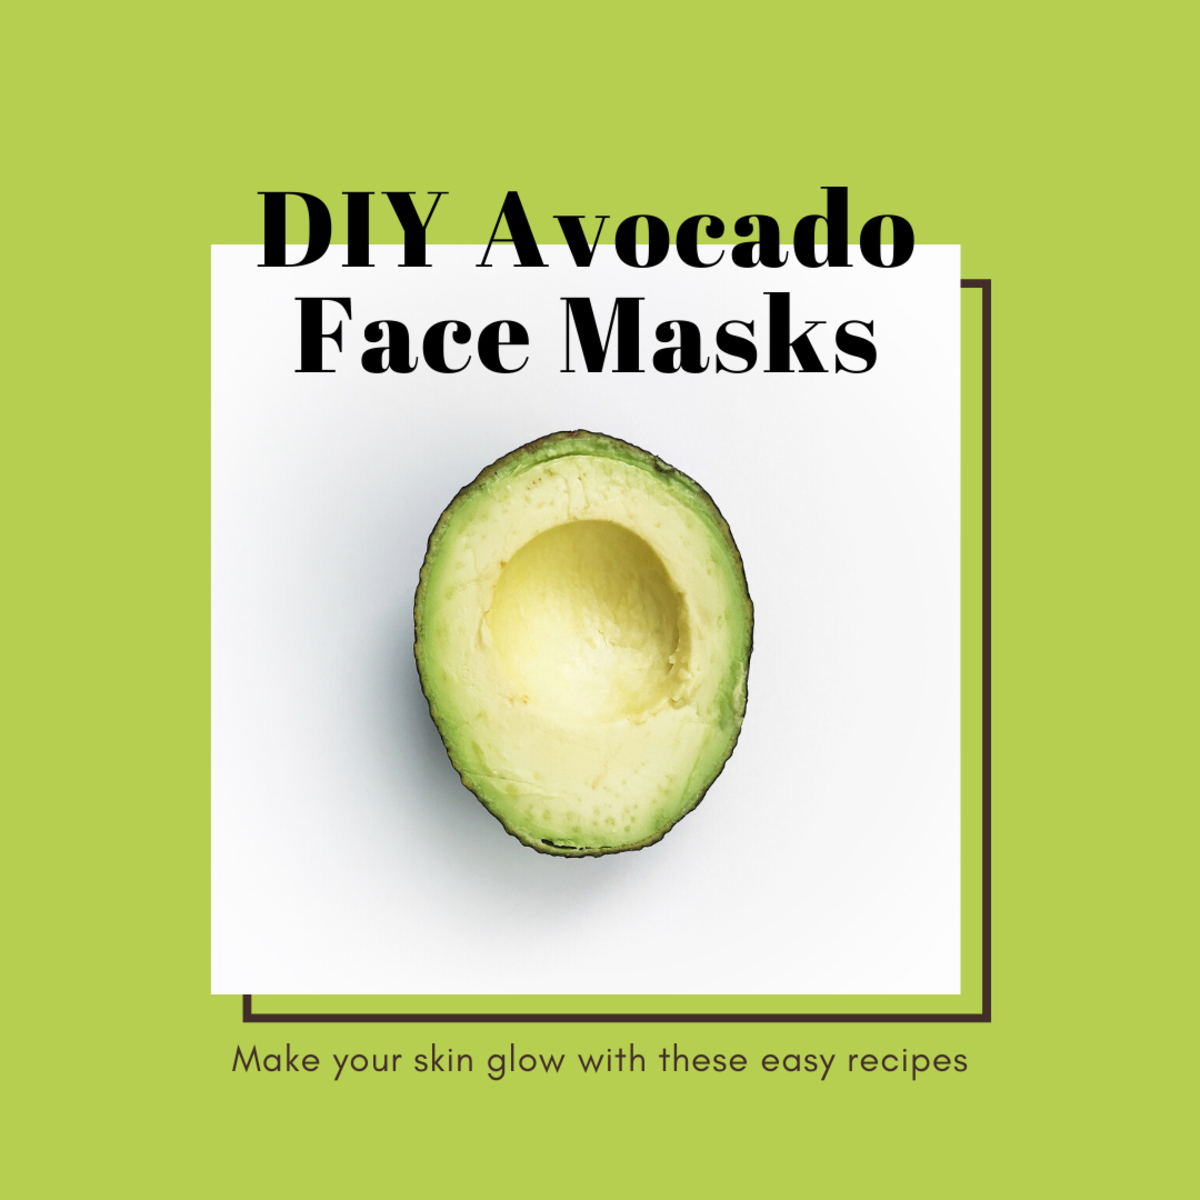 DIY Avocado Face Masks for Glowing Skin